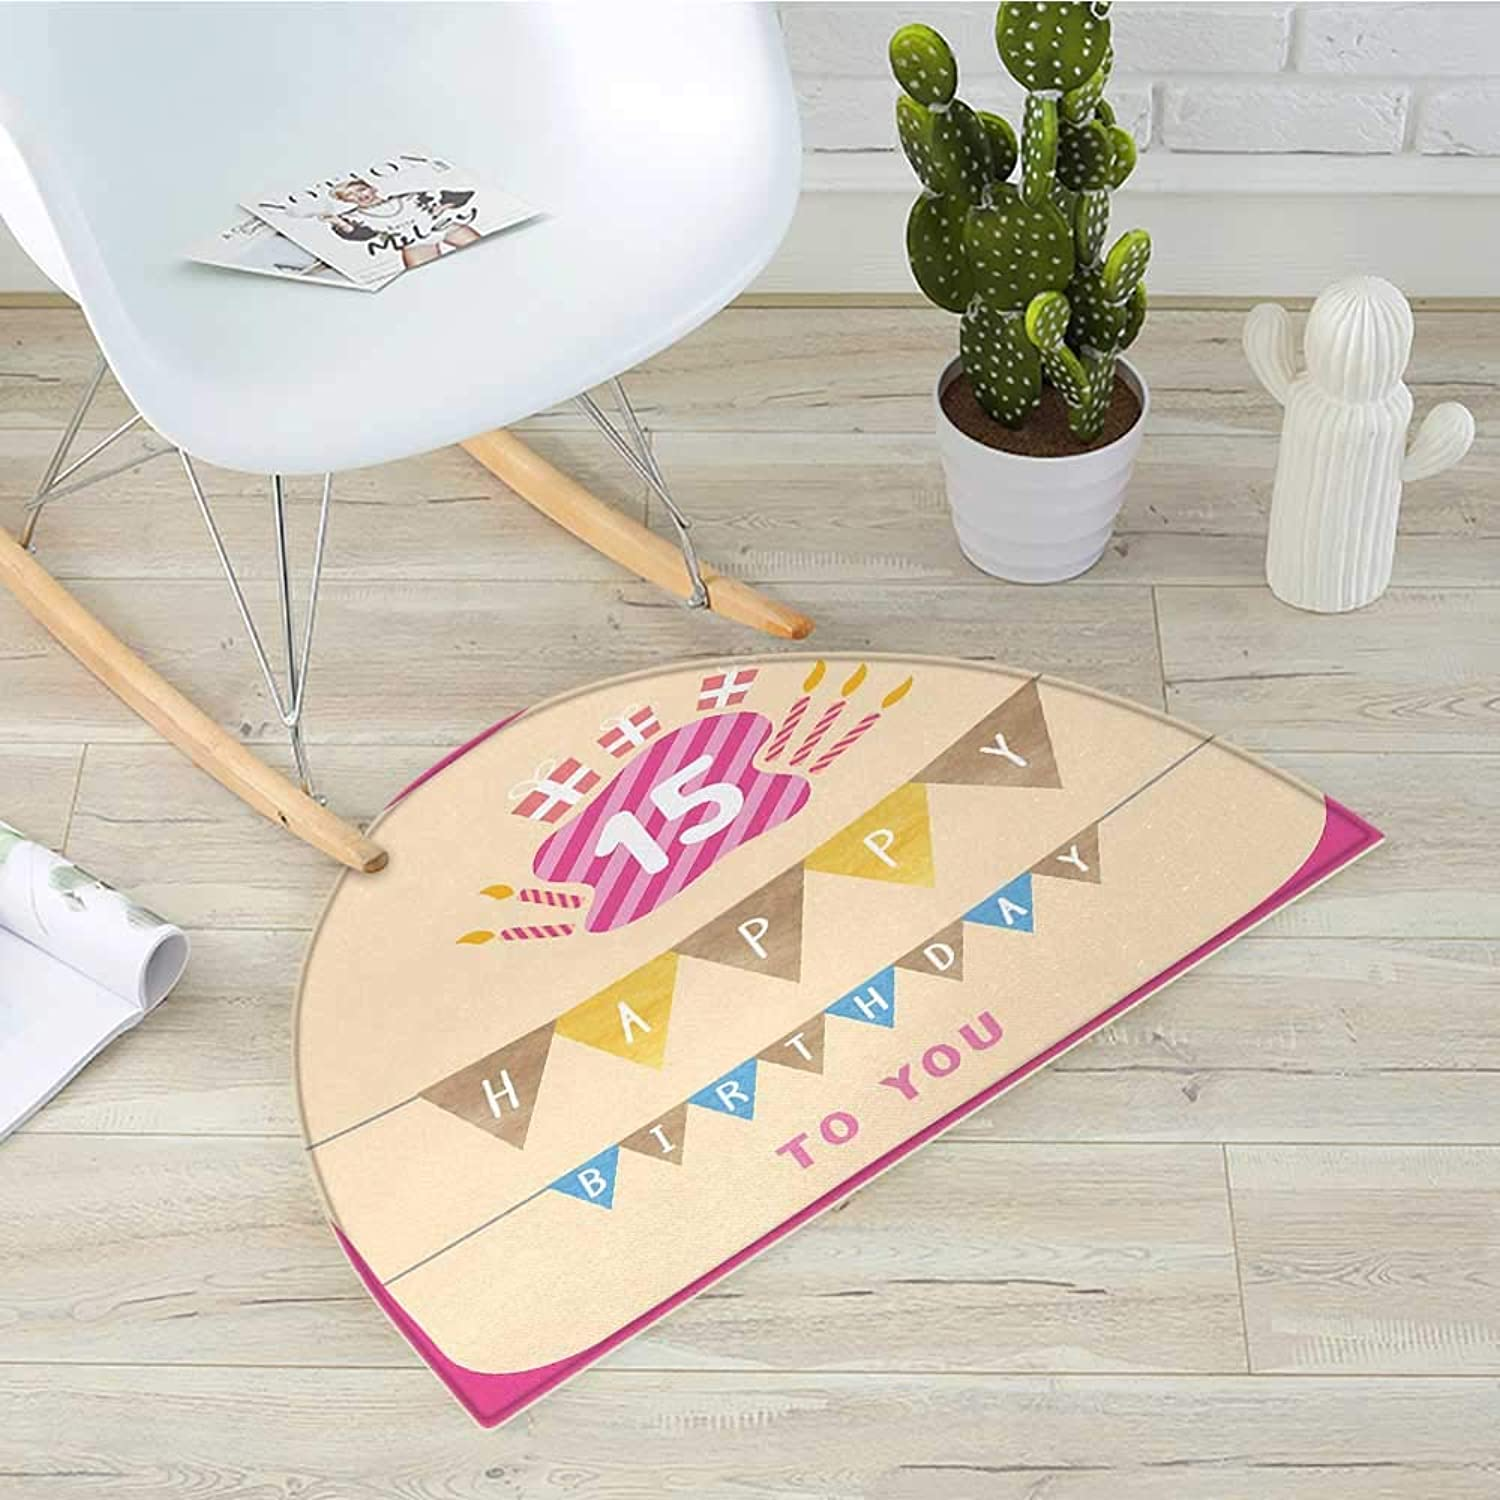 15th Birthday Semicircle Doormat Pastel colord Framework with Flags Presents and Candles Greeting Themed Halfmoon doormats H 39.3  xD 59  Multicolor